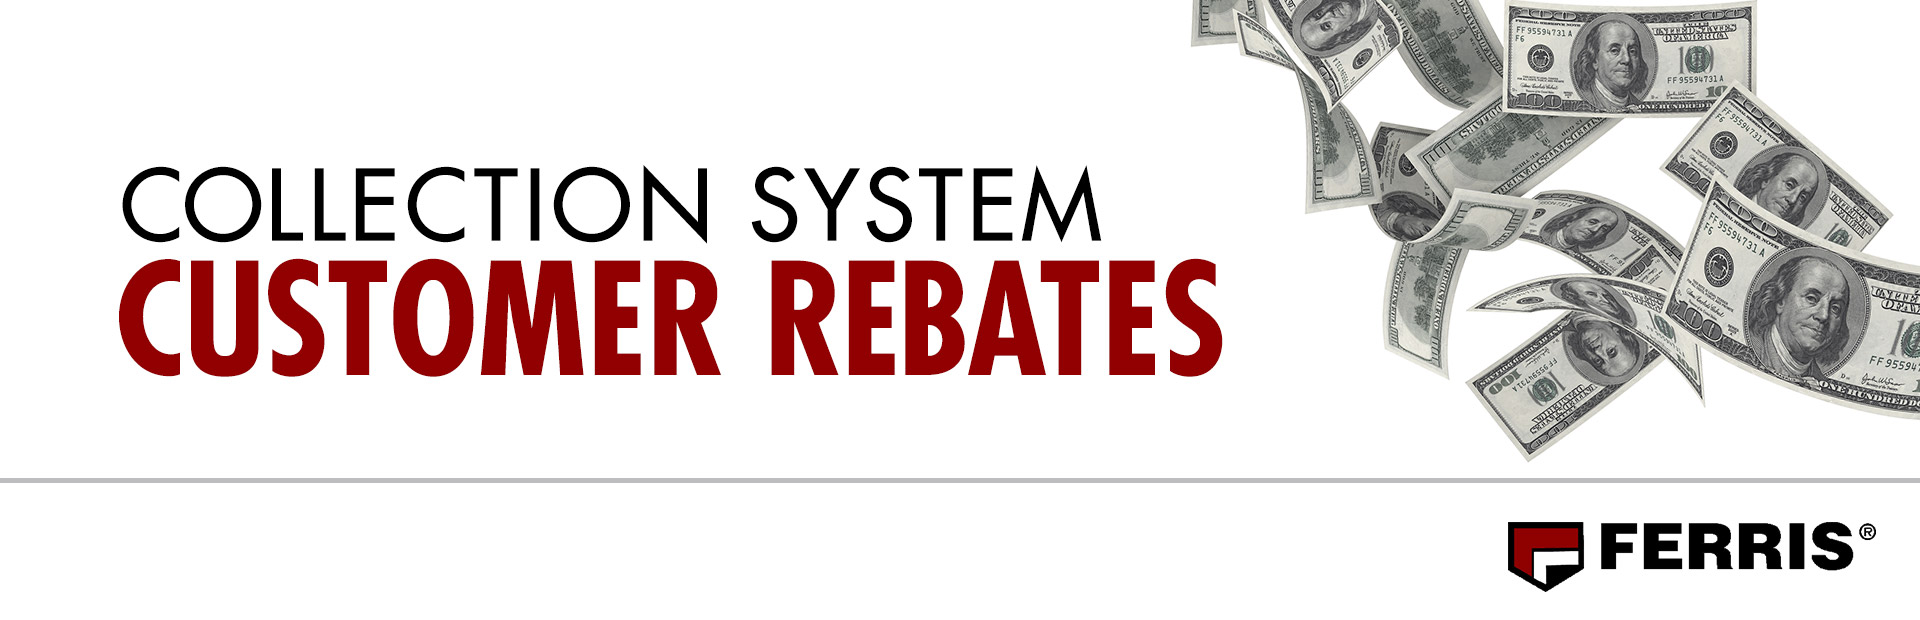 Ferris: COLLECTION SYSTEM CUSTOMER REBATES